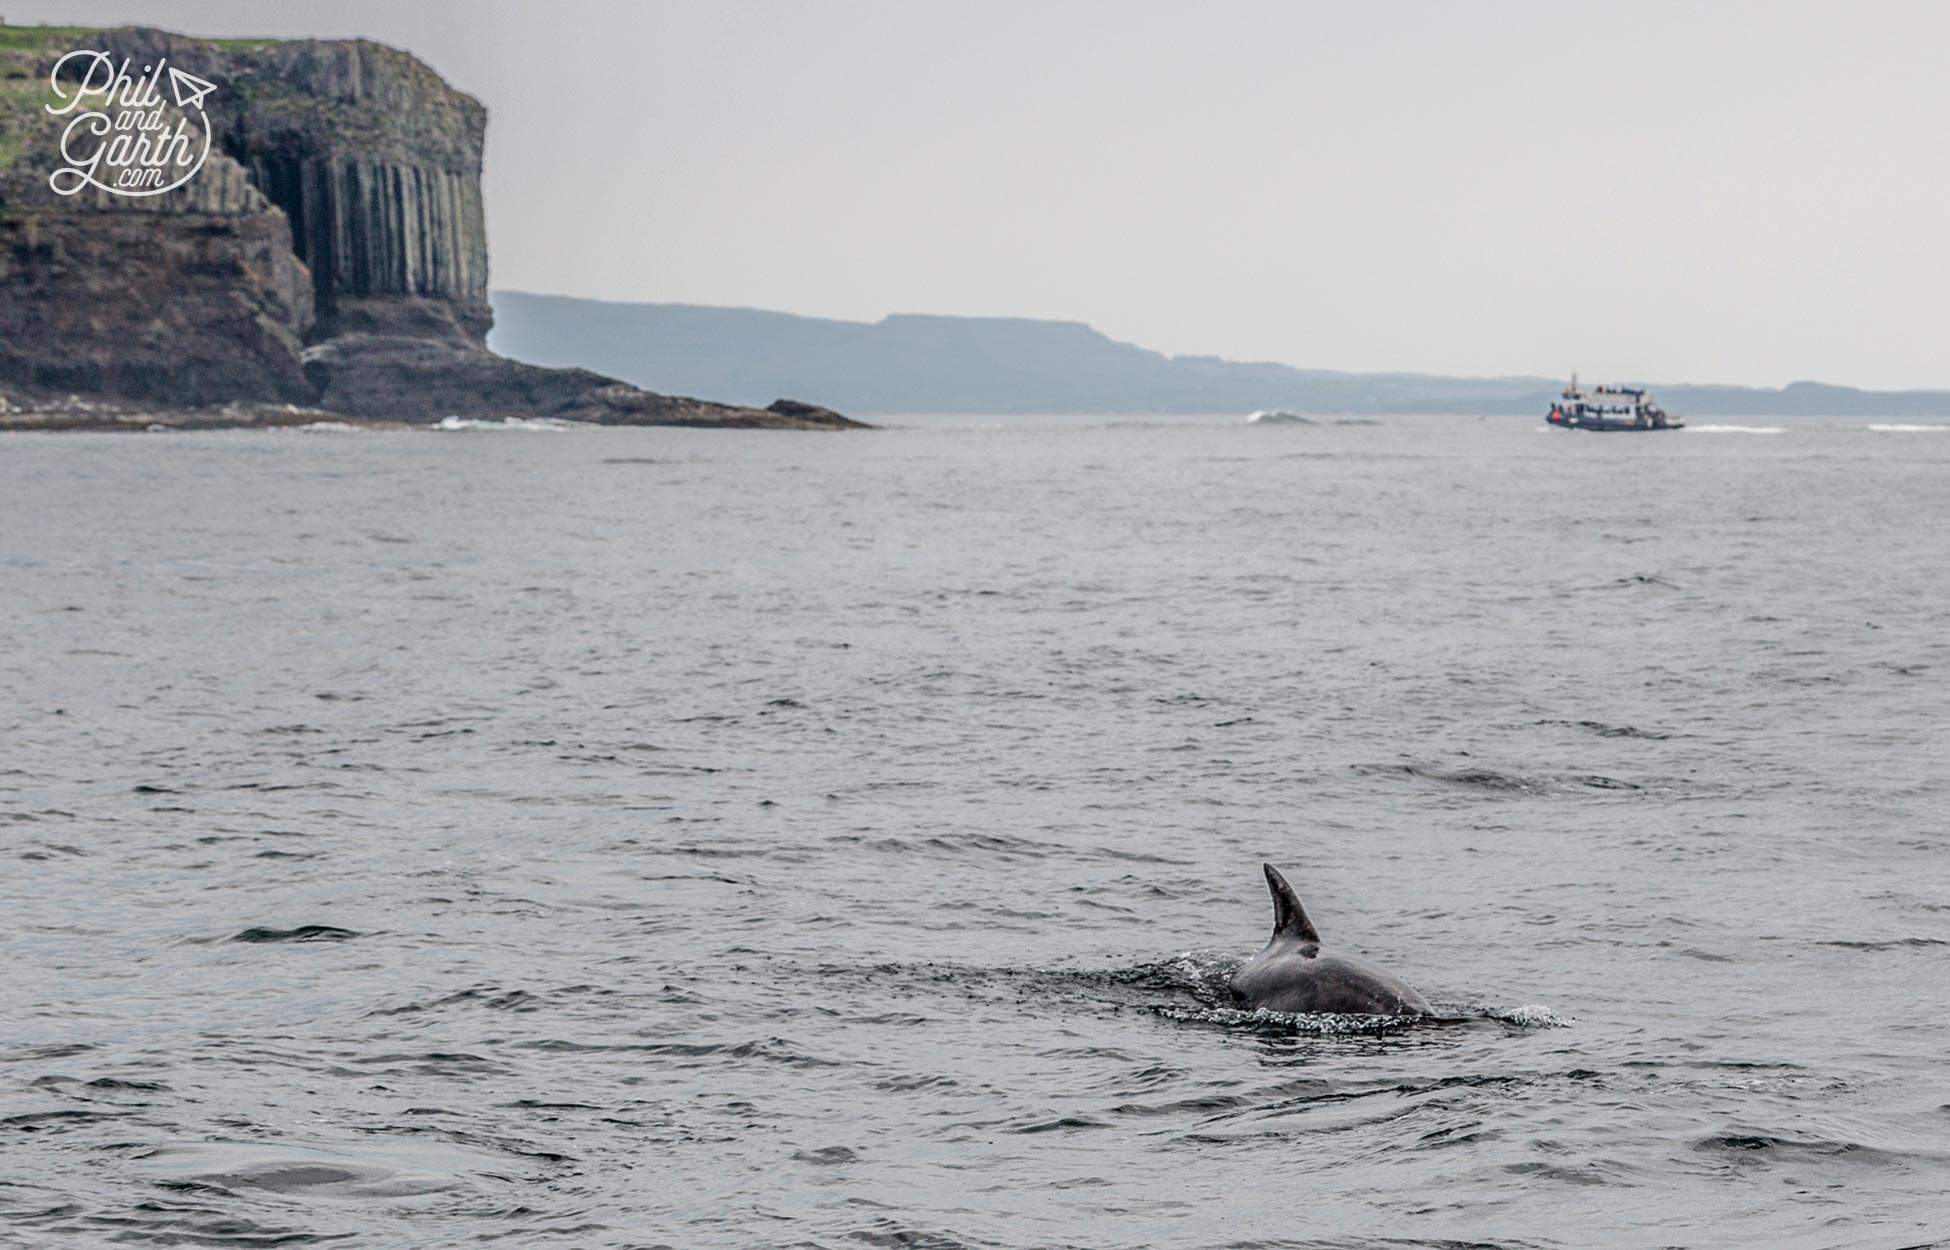 A pod of dolphins join use as we leave Staffa